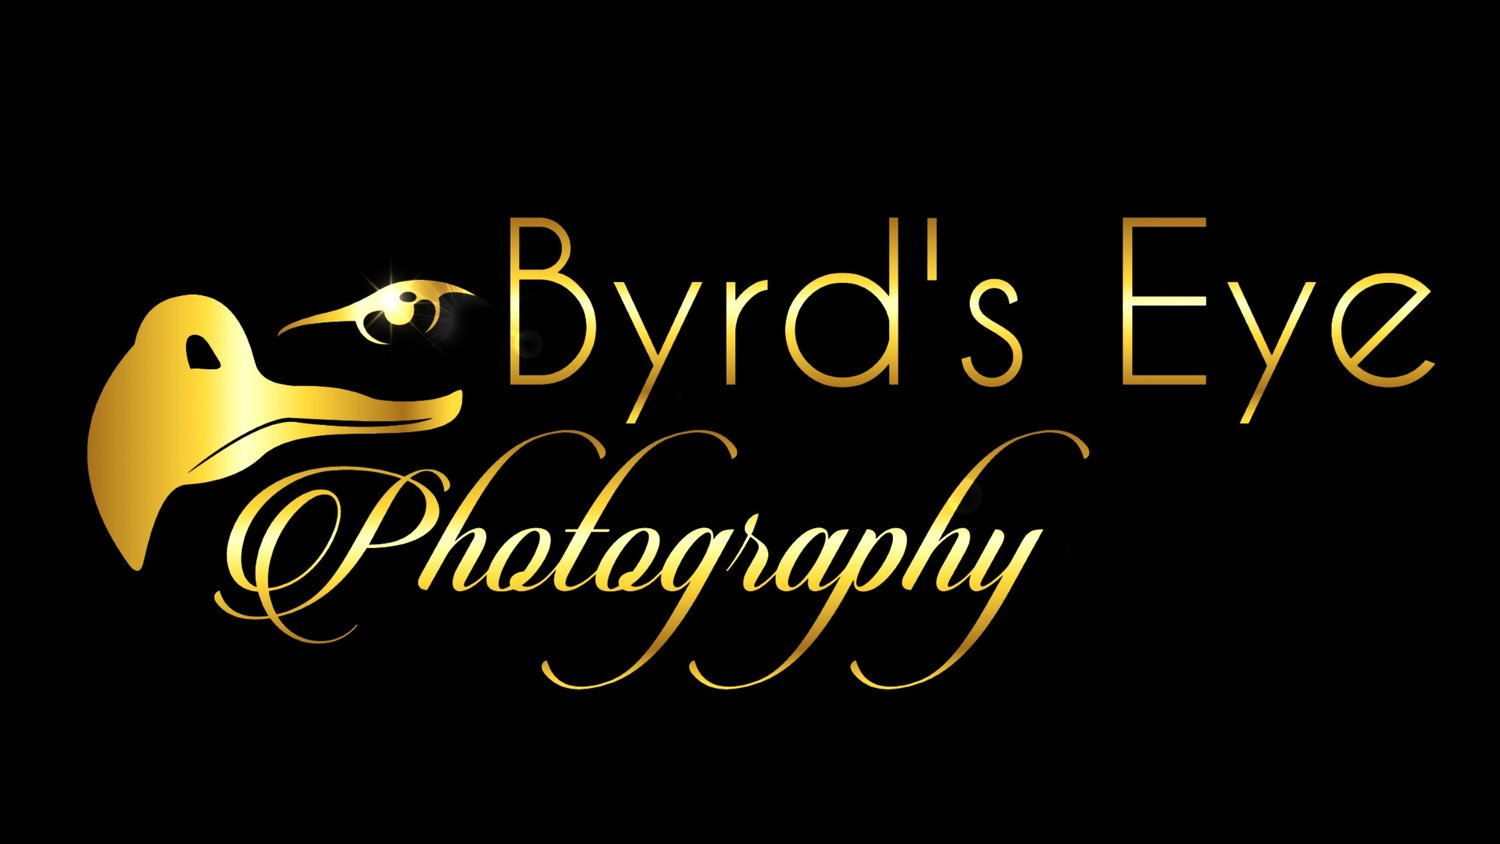 Byrds Eye Photography